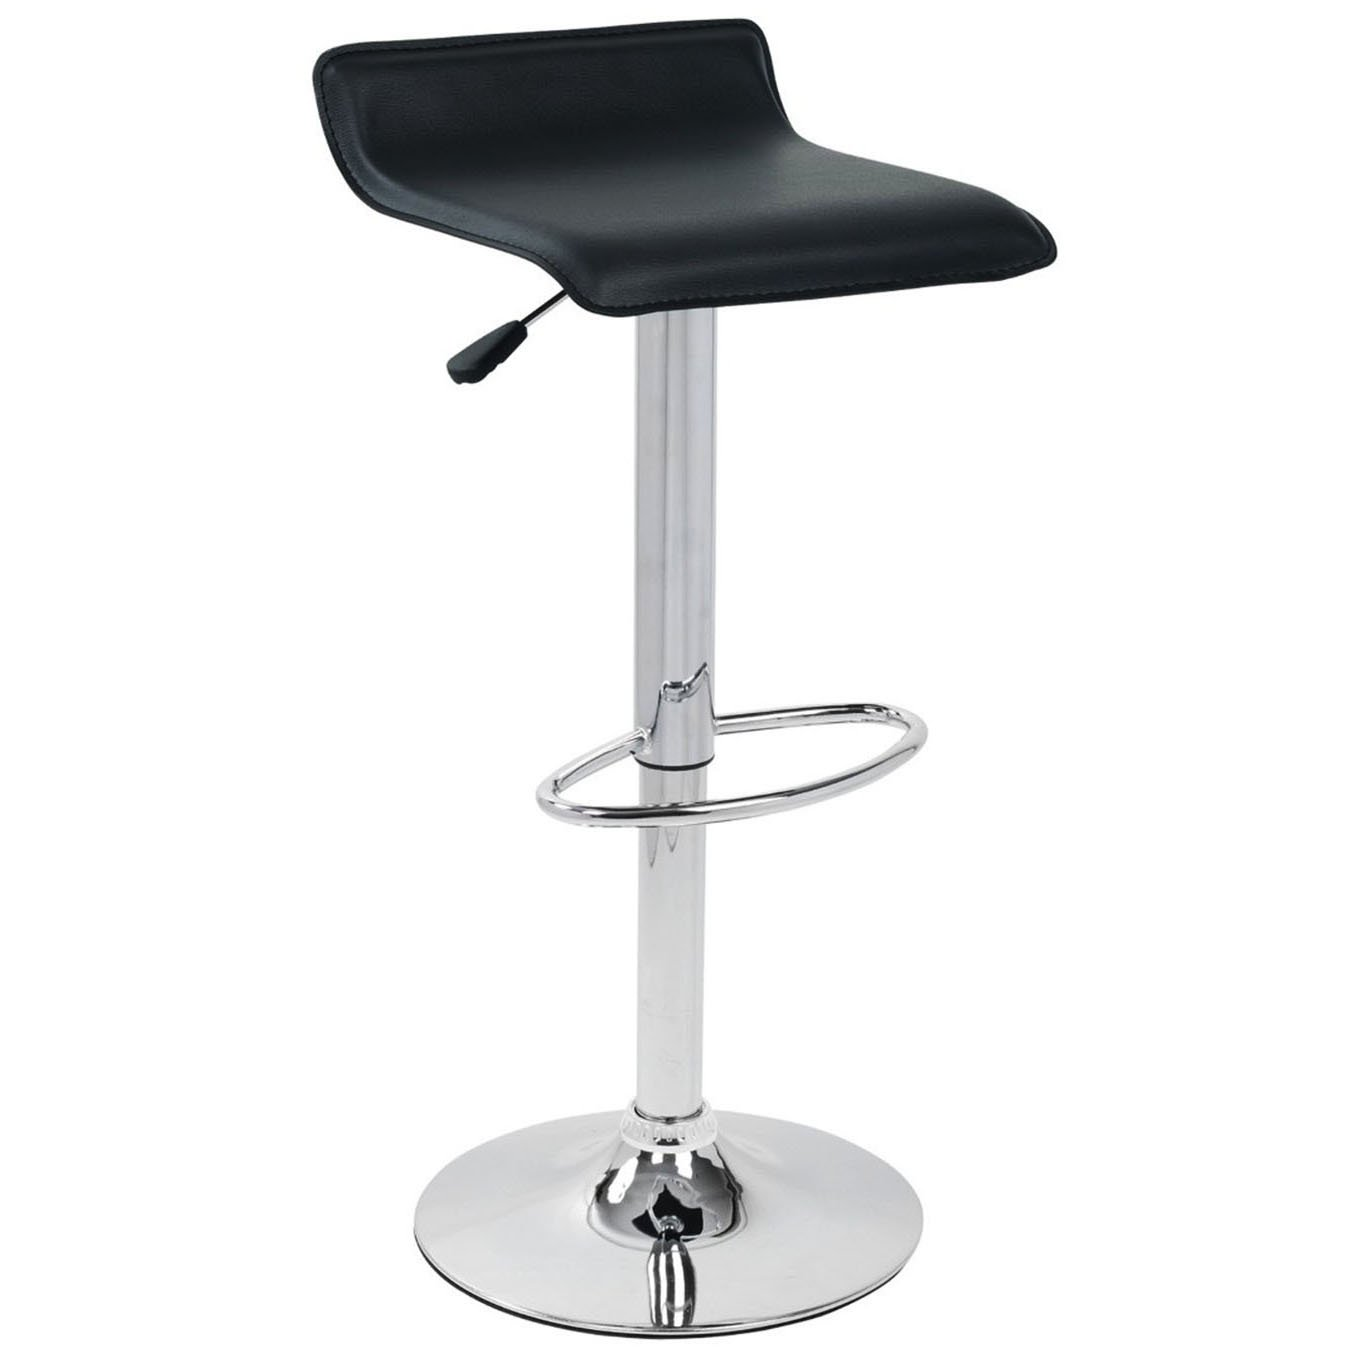 Baceno Bar Stool - Black Product Image